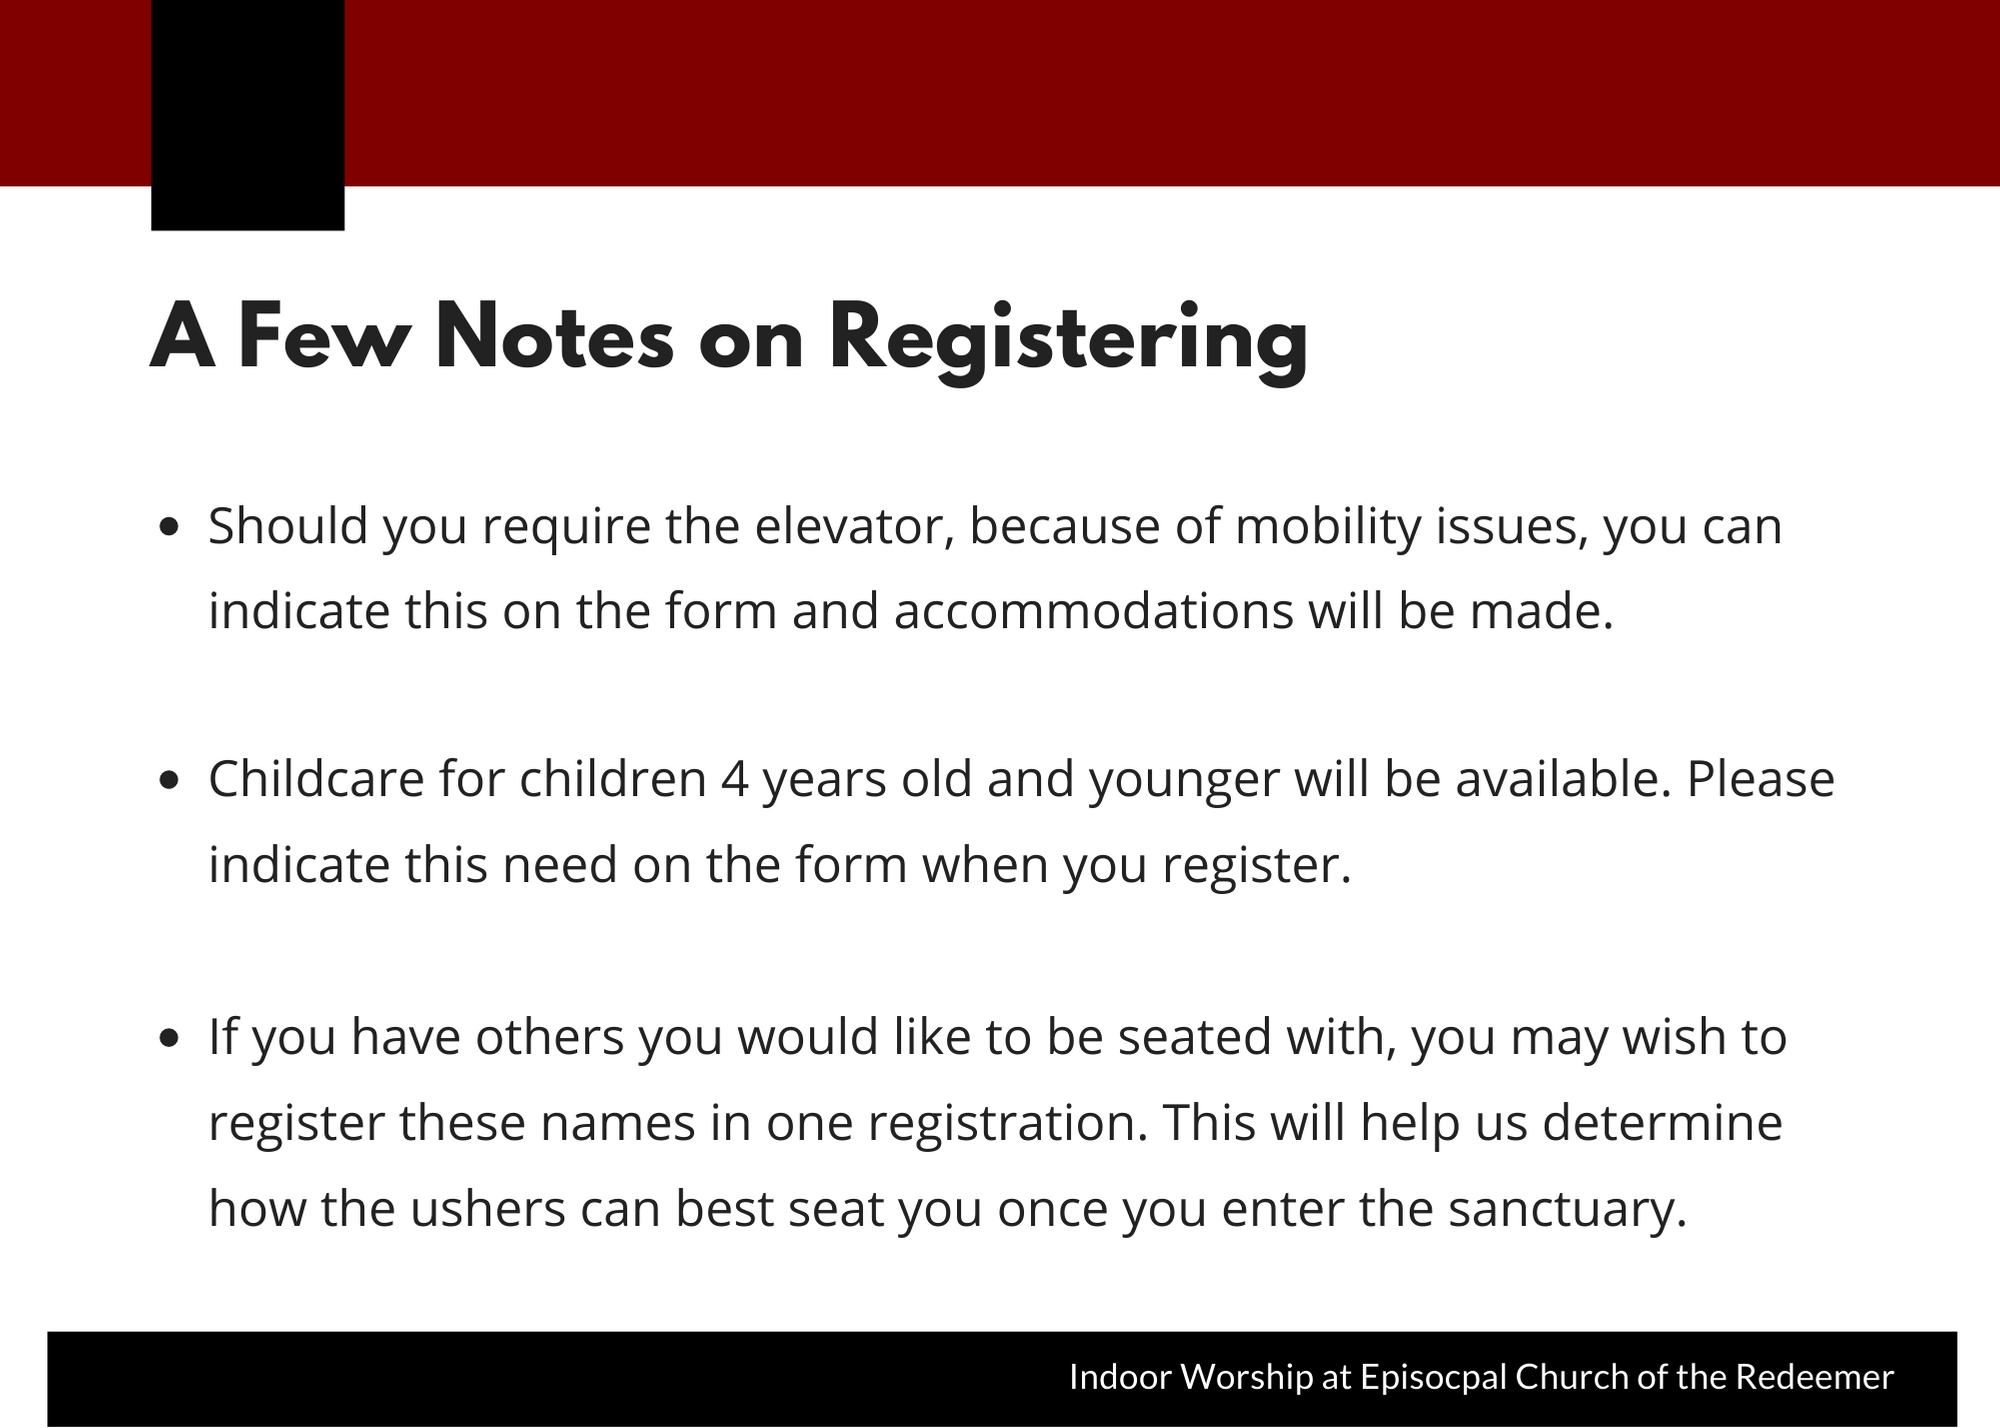 copy-of-a-few-notes-on-registering_749